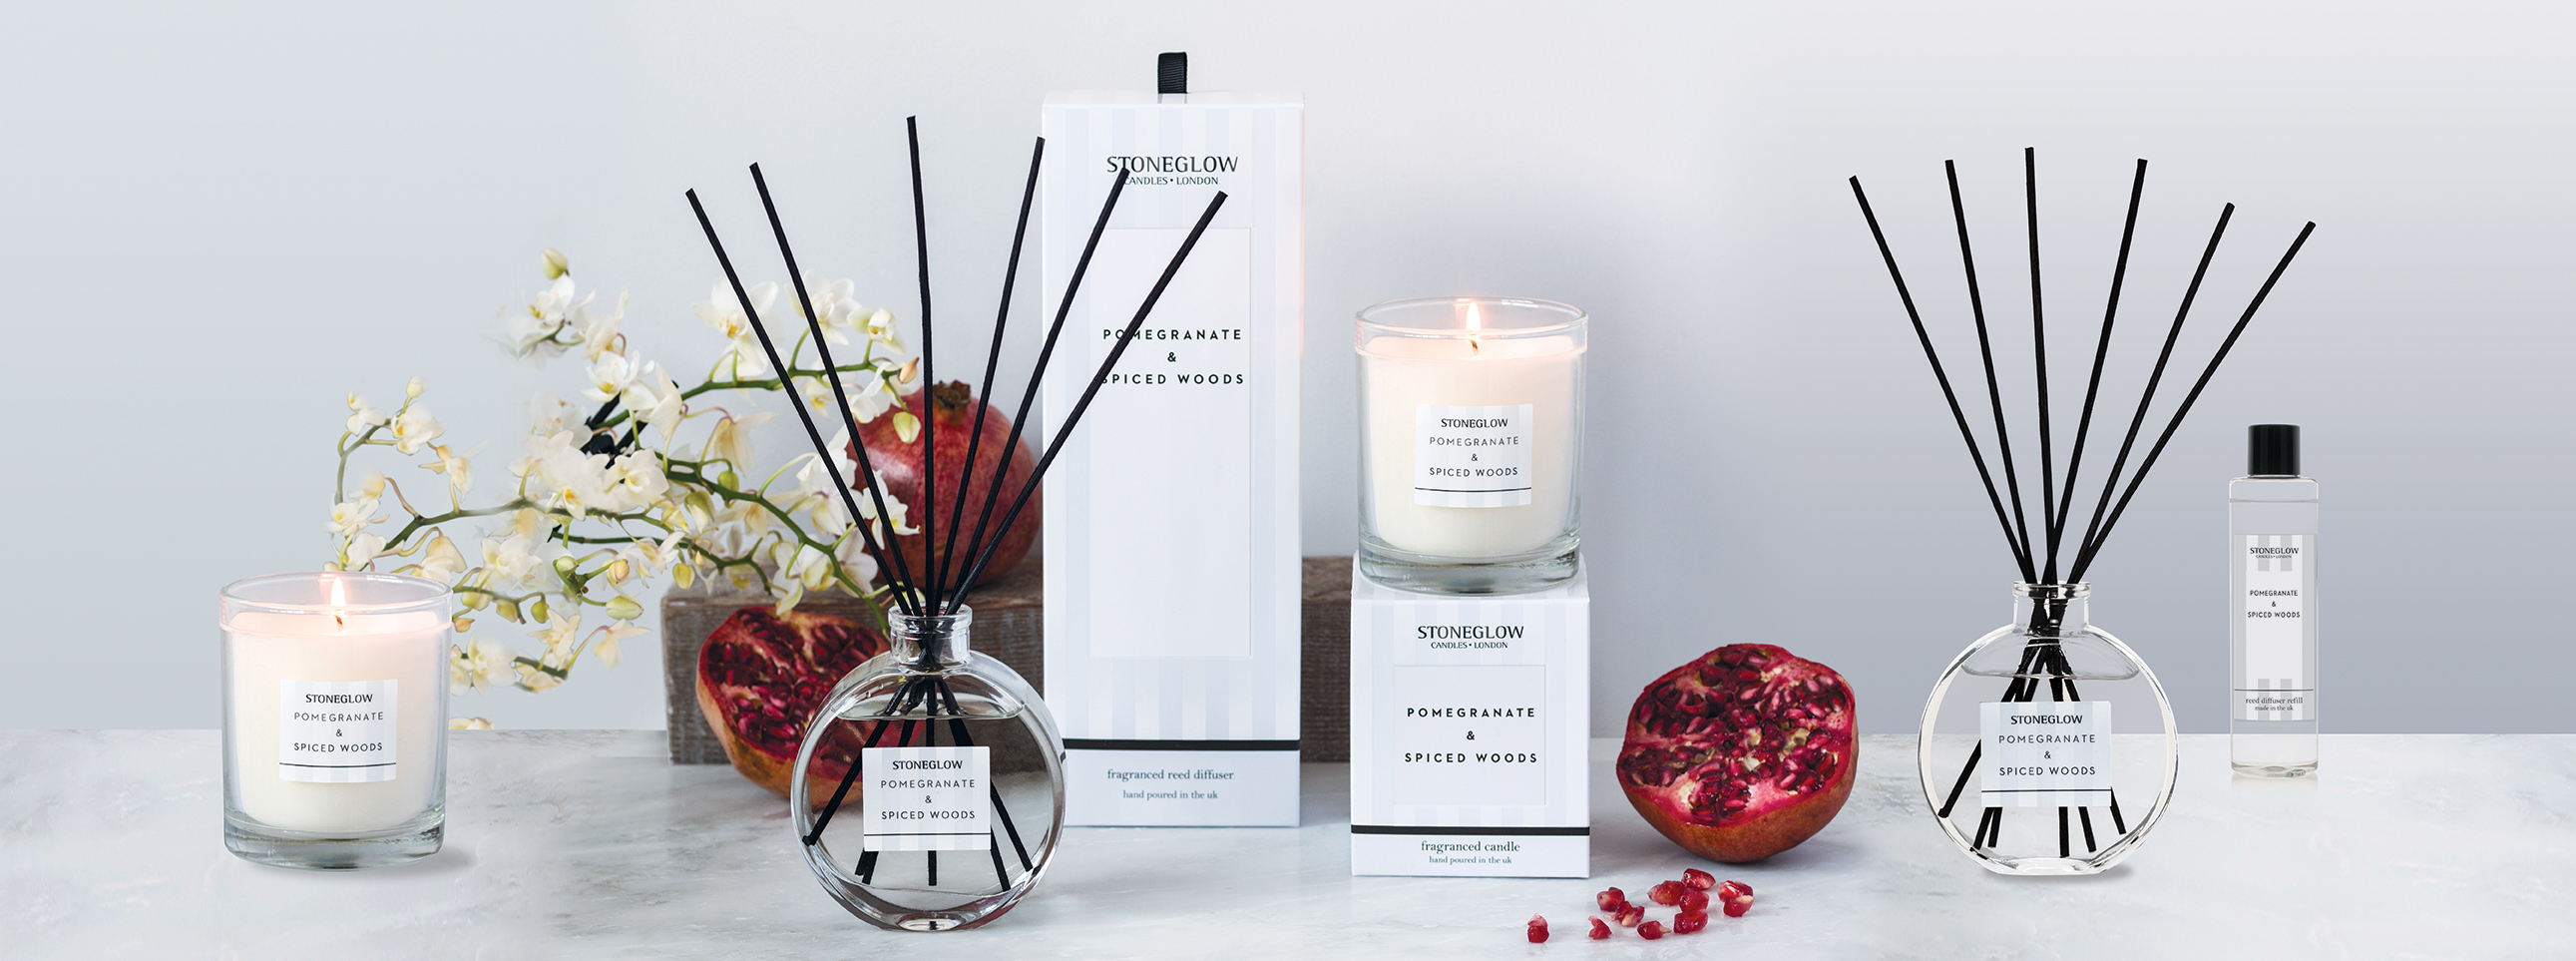 Pomegranate spiced woods candles banner